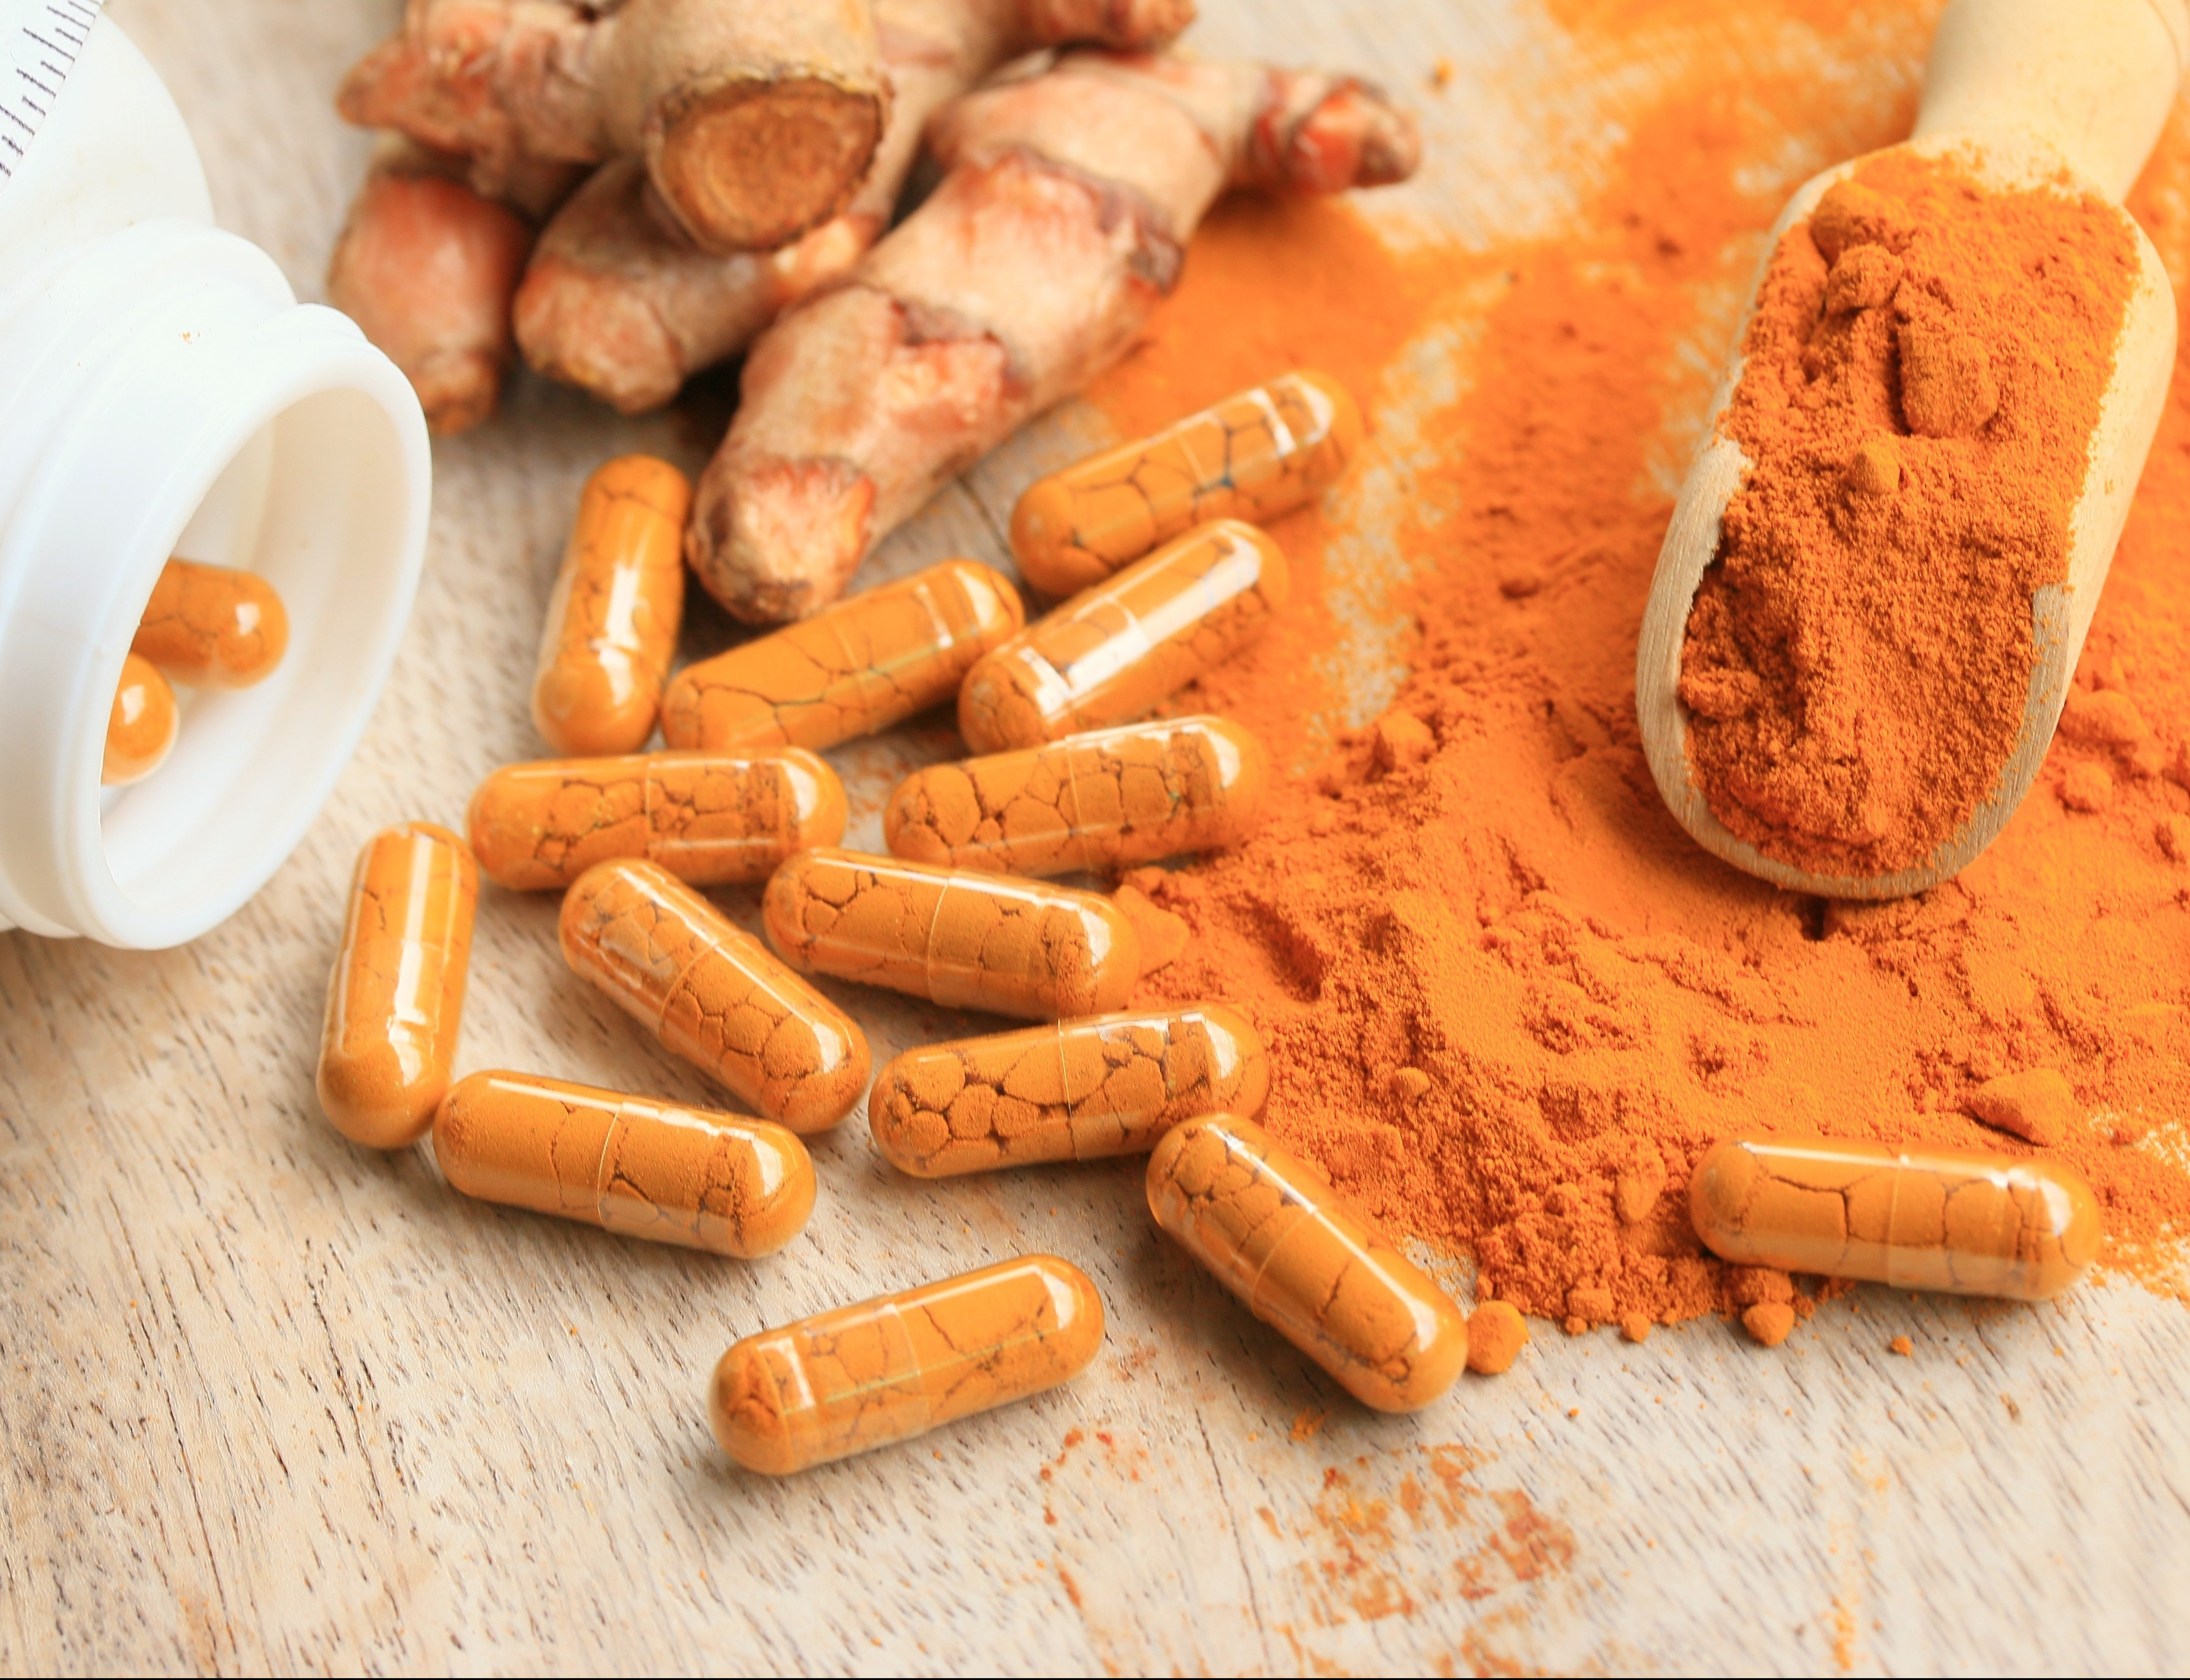 Why Aren't Doctors Prescribing Turmeric If It's So Therapeutic?